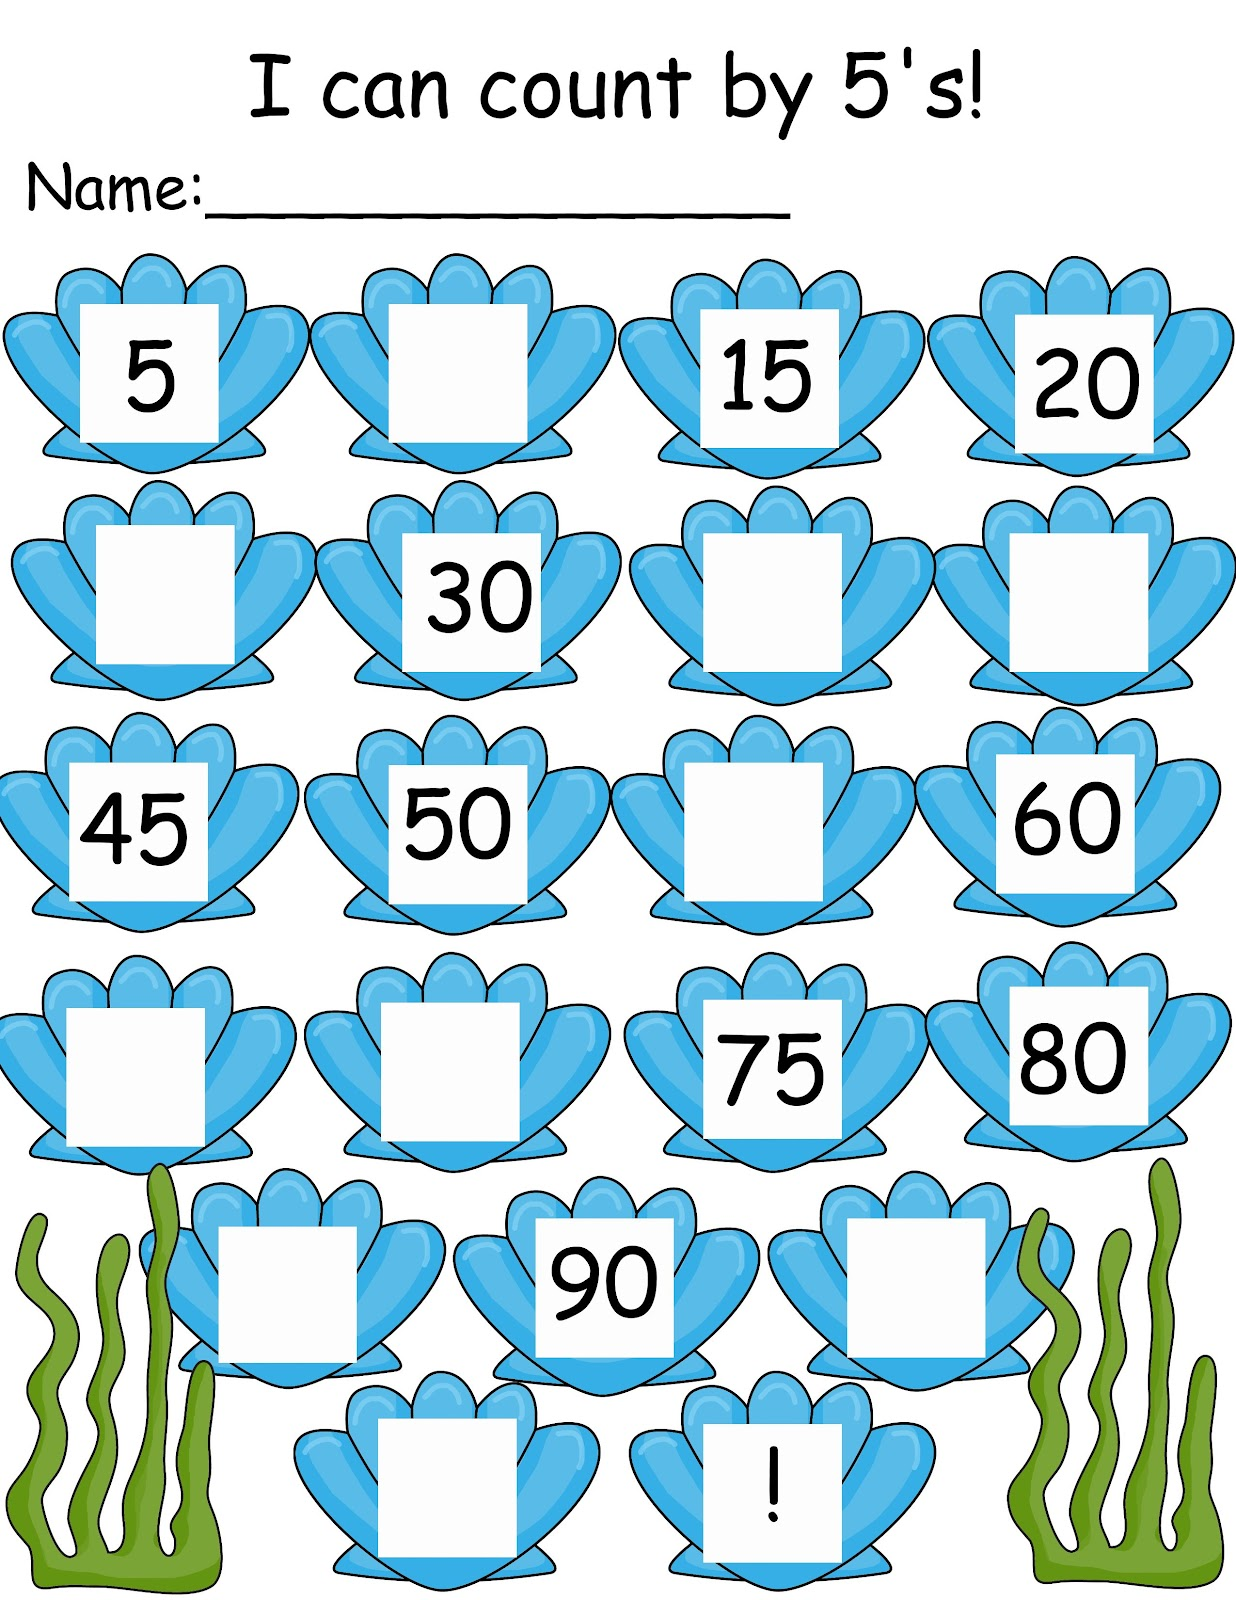 Count By Twos Worksheet – Counting by 5 Worksheets